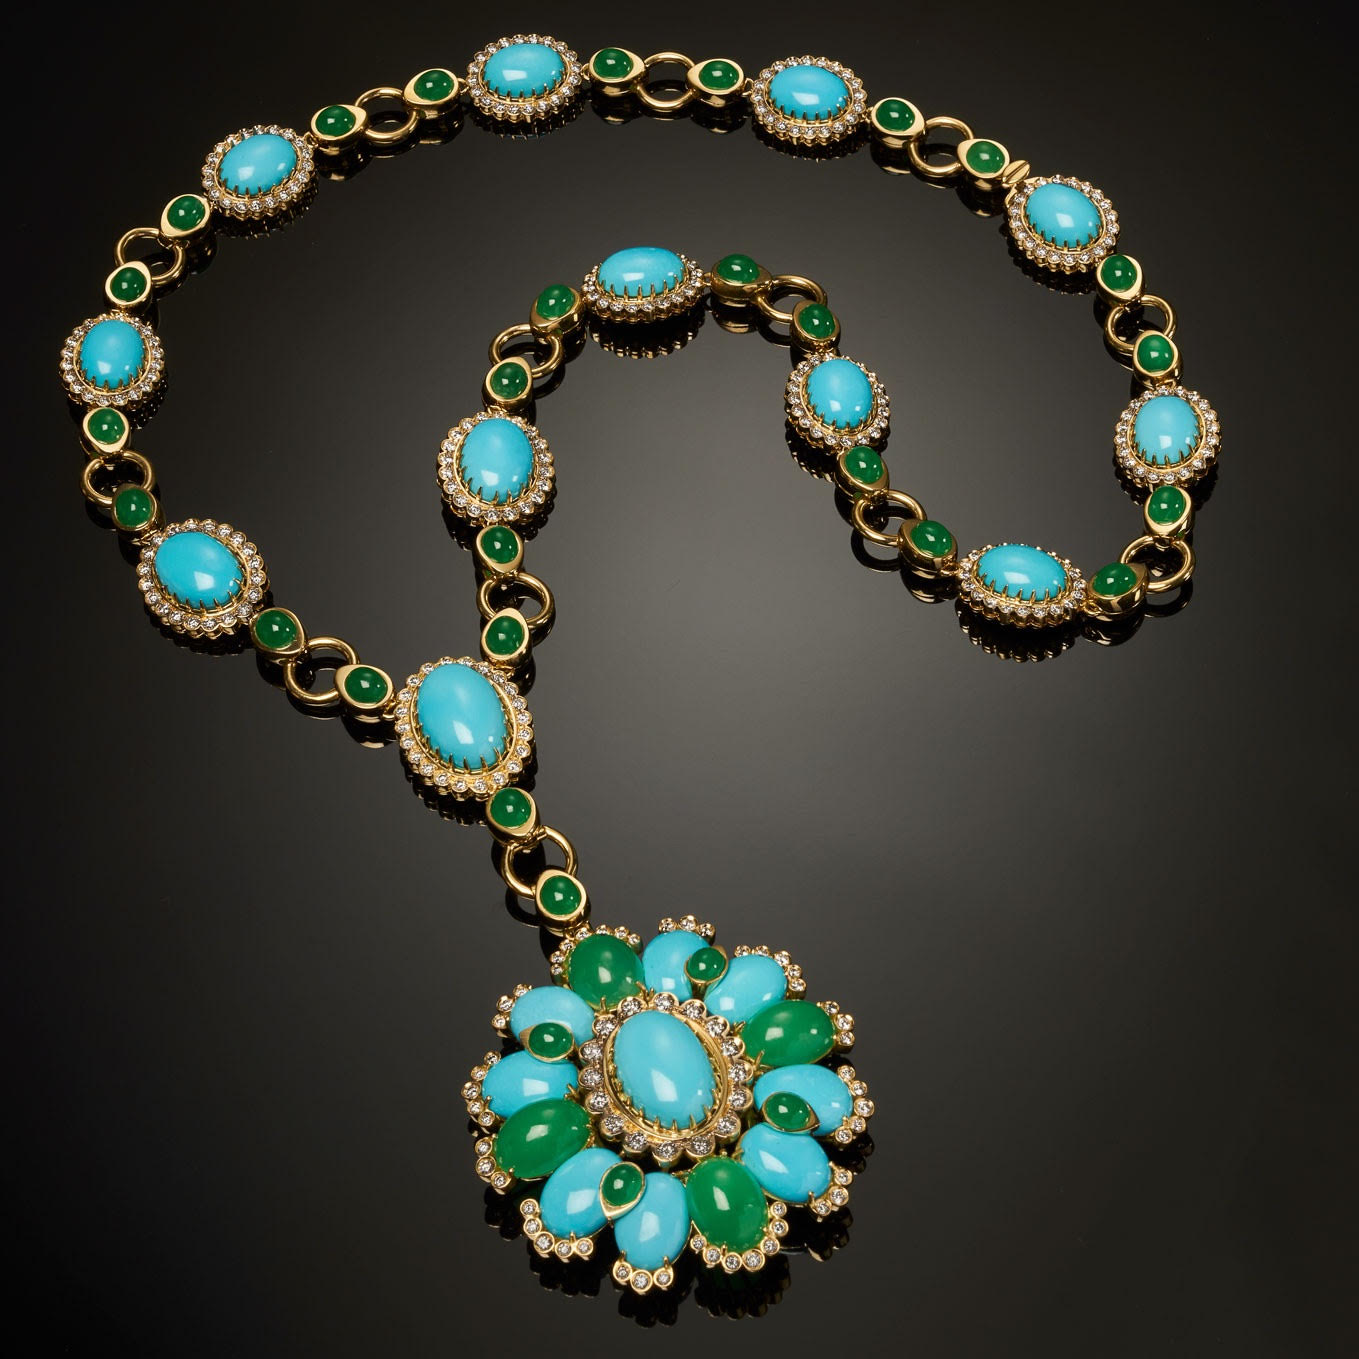 Veschetti turquoise, emerald and diamond necklace